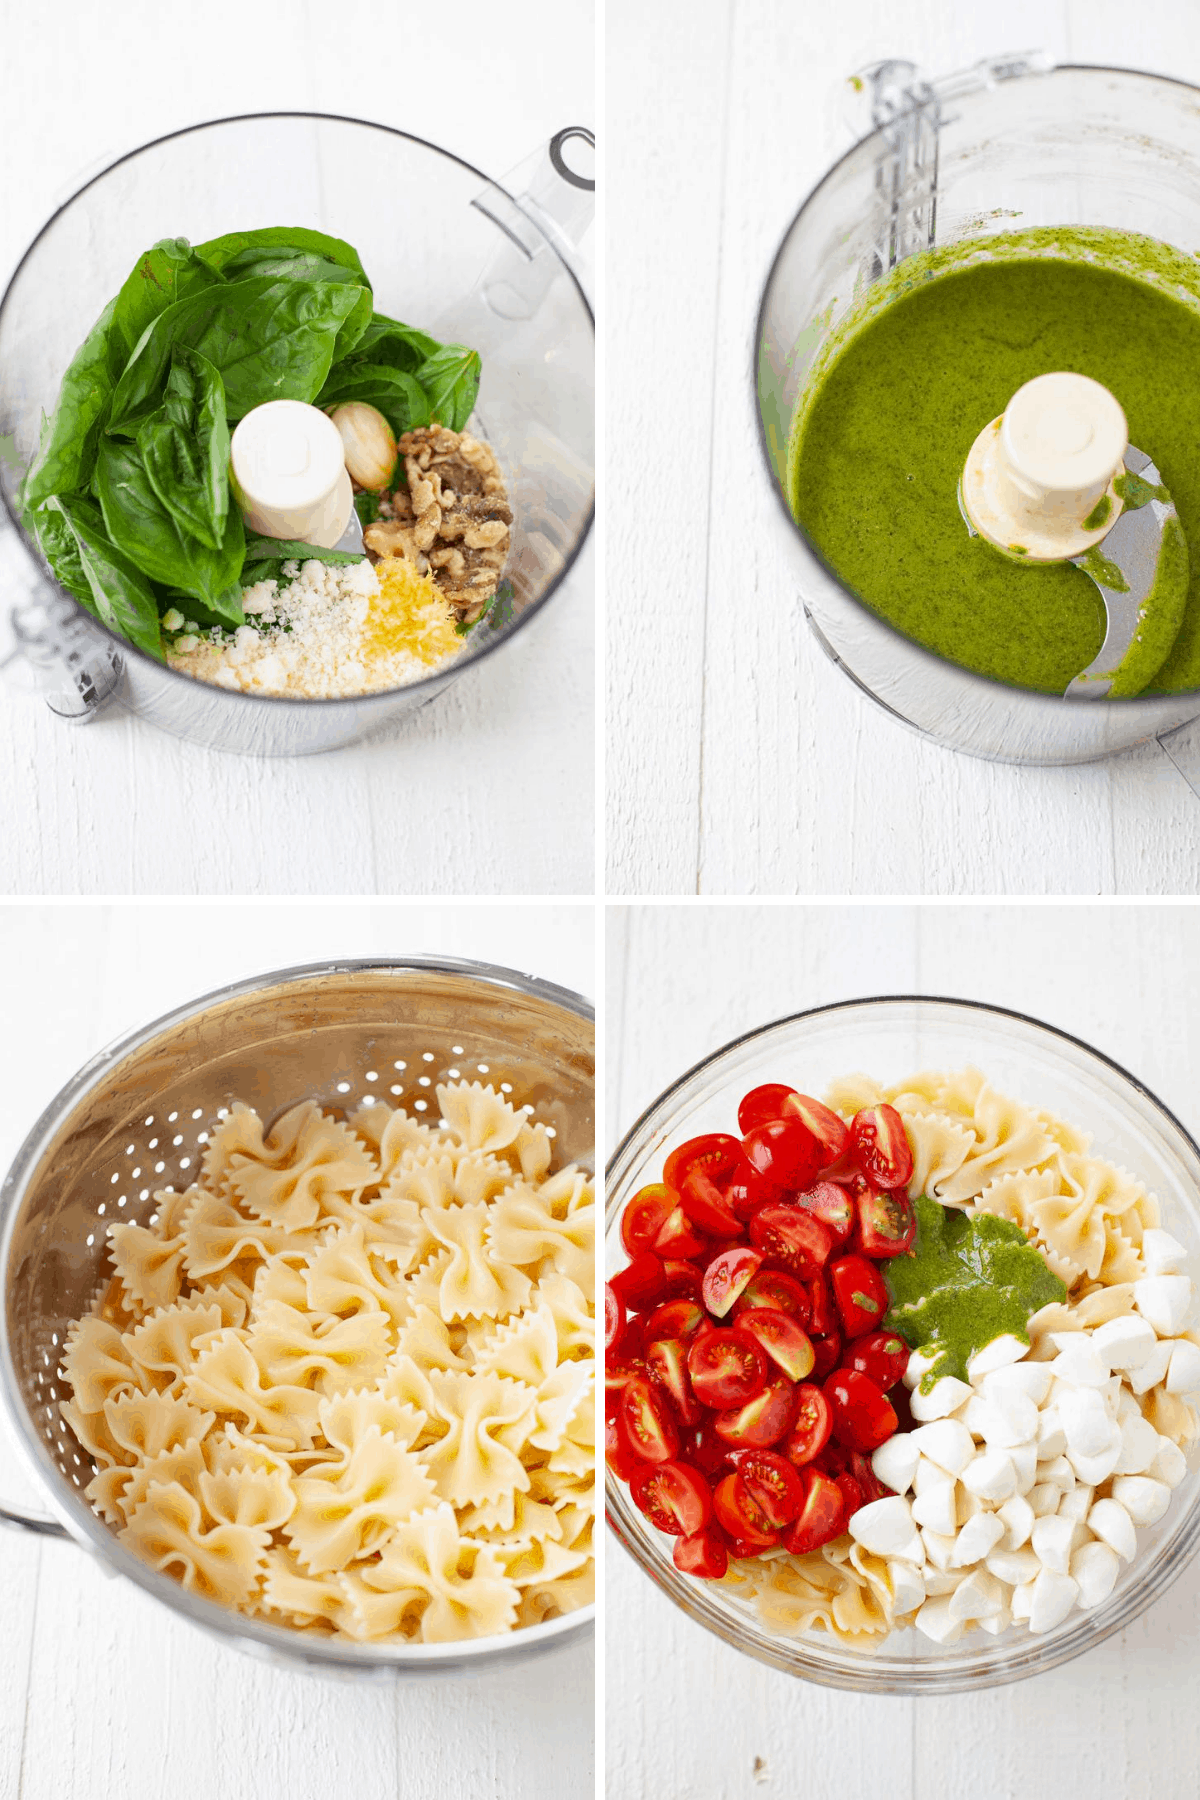 pesto ingredients in food processor, cooked pasta in a colander, and pasta, tomatoes, and caprese in a bowl